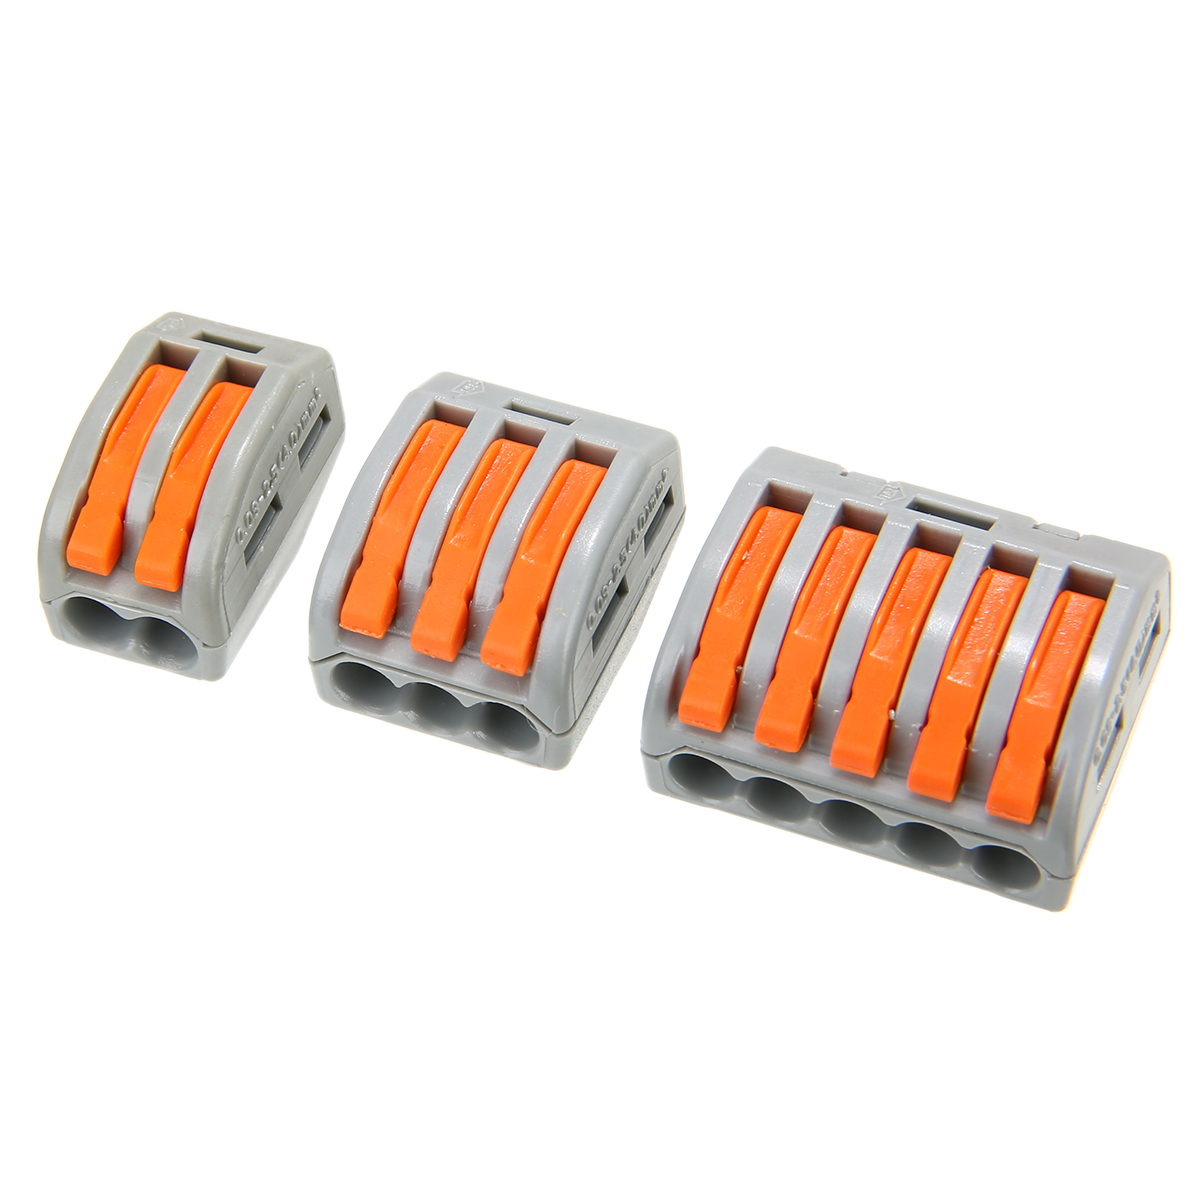 60pcs Plastic Practical Terminal Block 2/3/5 Hole Spring Lever Terminal Block Electric Cable Wire Connector Flexible Operating60pcs Plastic Practical Terminal Block 2/3/5 Hole Spring Lever Terminal Block Electric Cable Wire Connector Flexible Operating